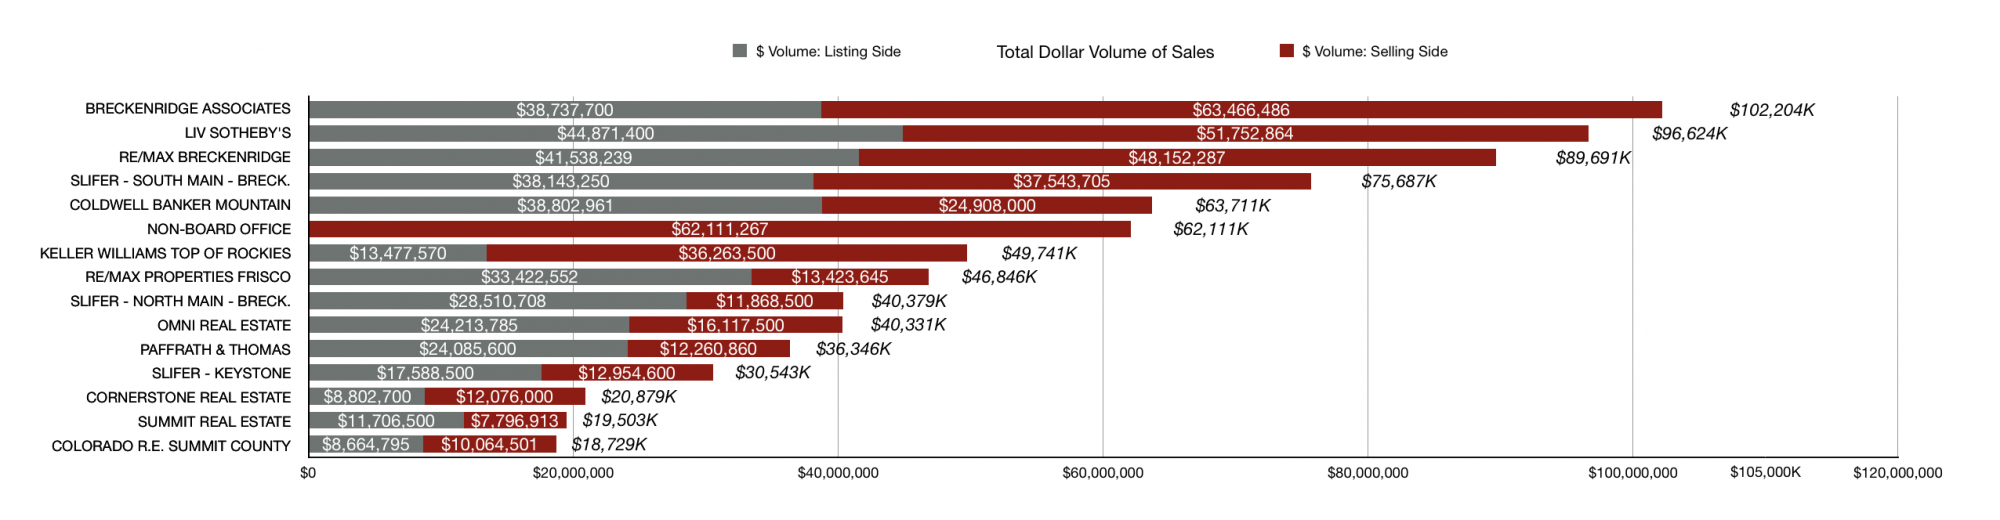 All Summit County Sales Volume YTD to July 1, 2019